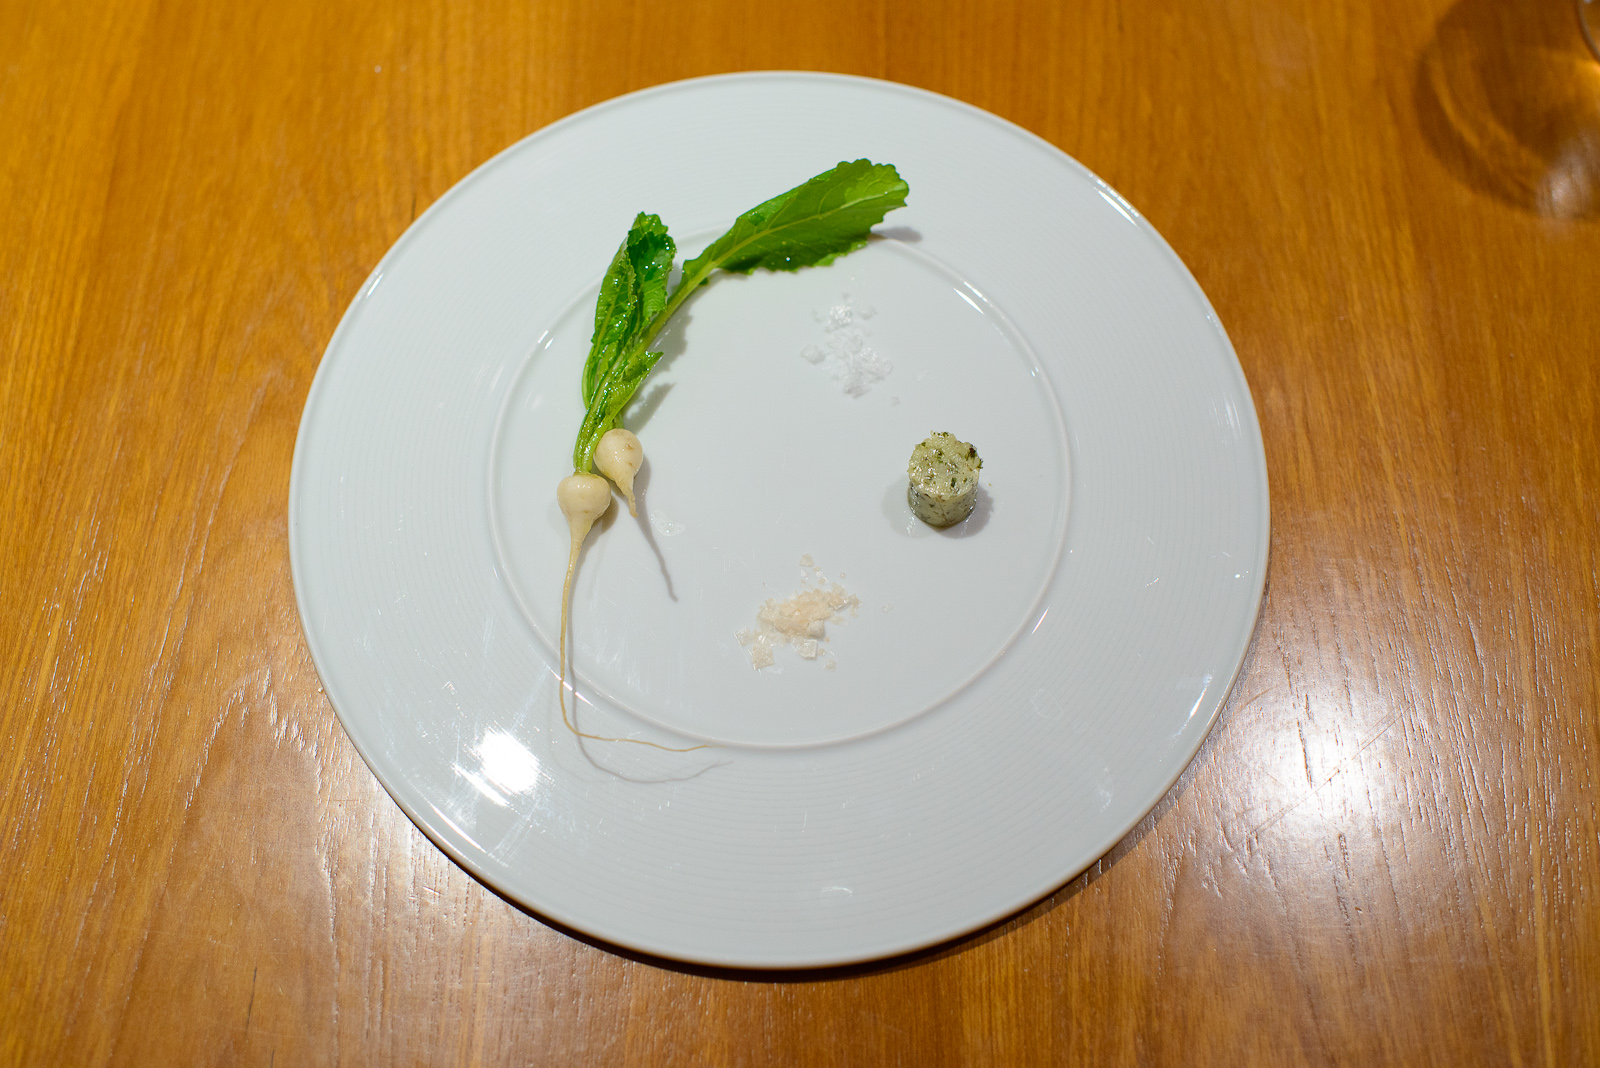 2nd Course: Take on radish and butter, this time with turnips fr